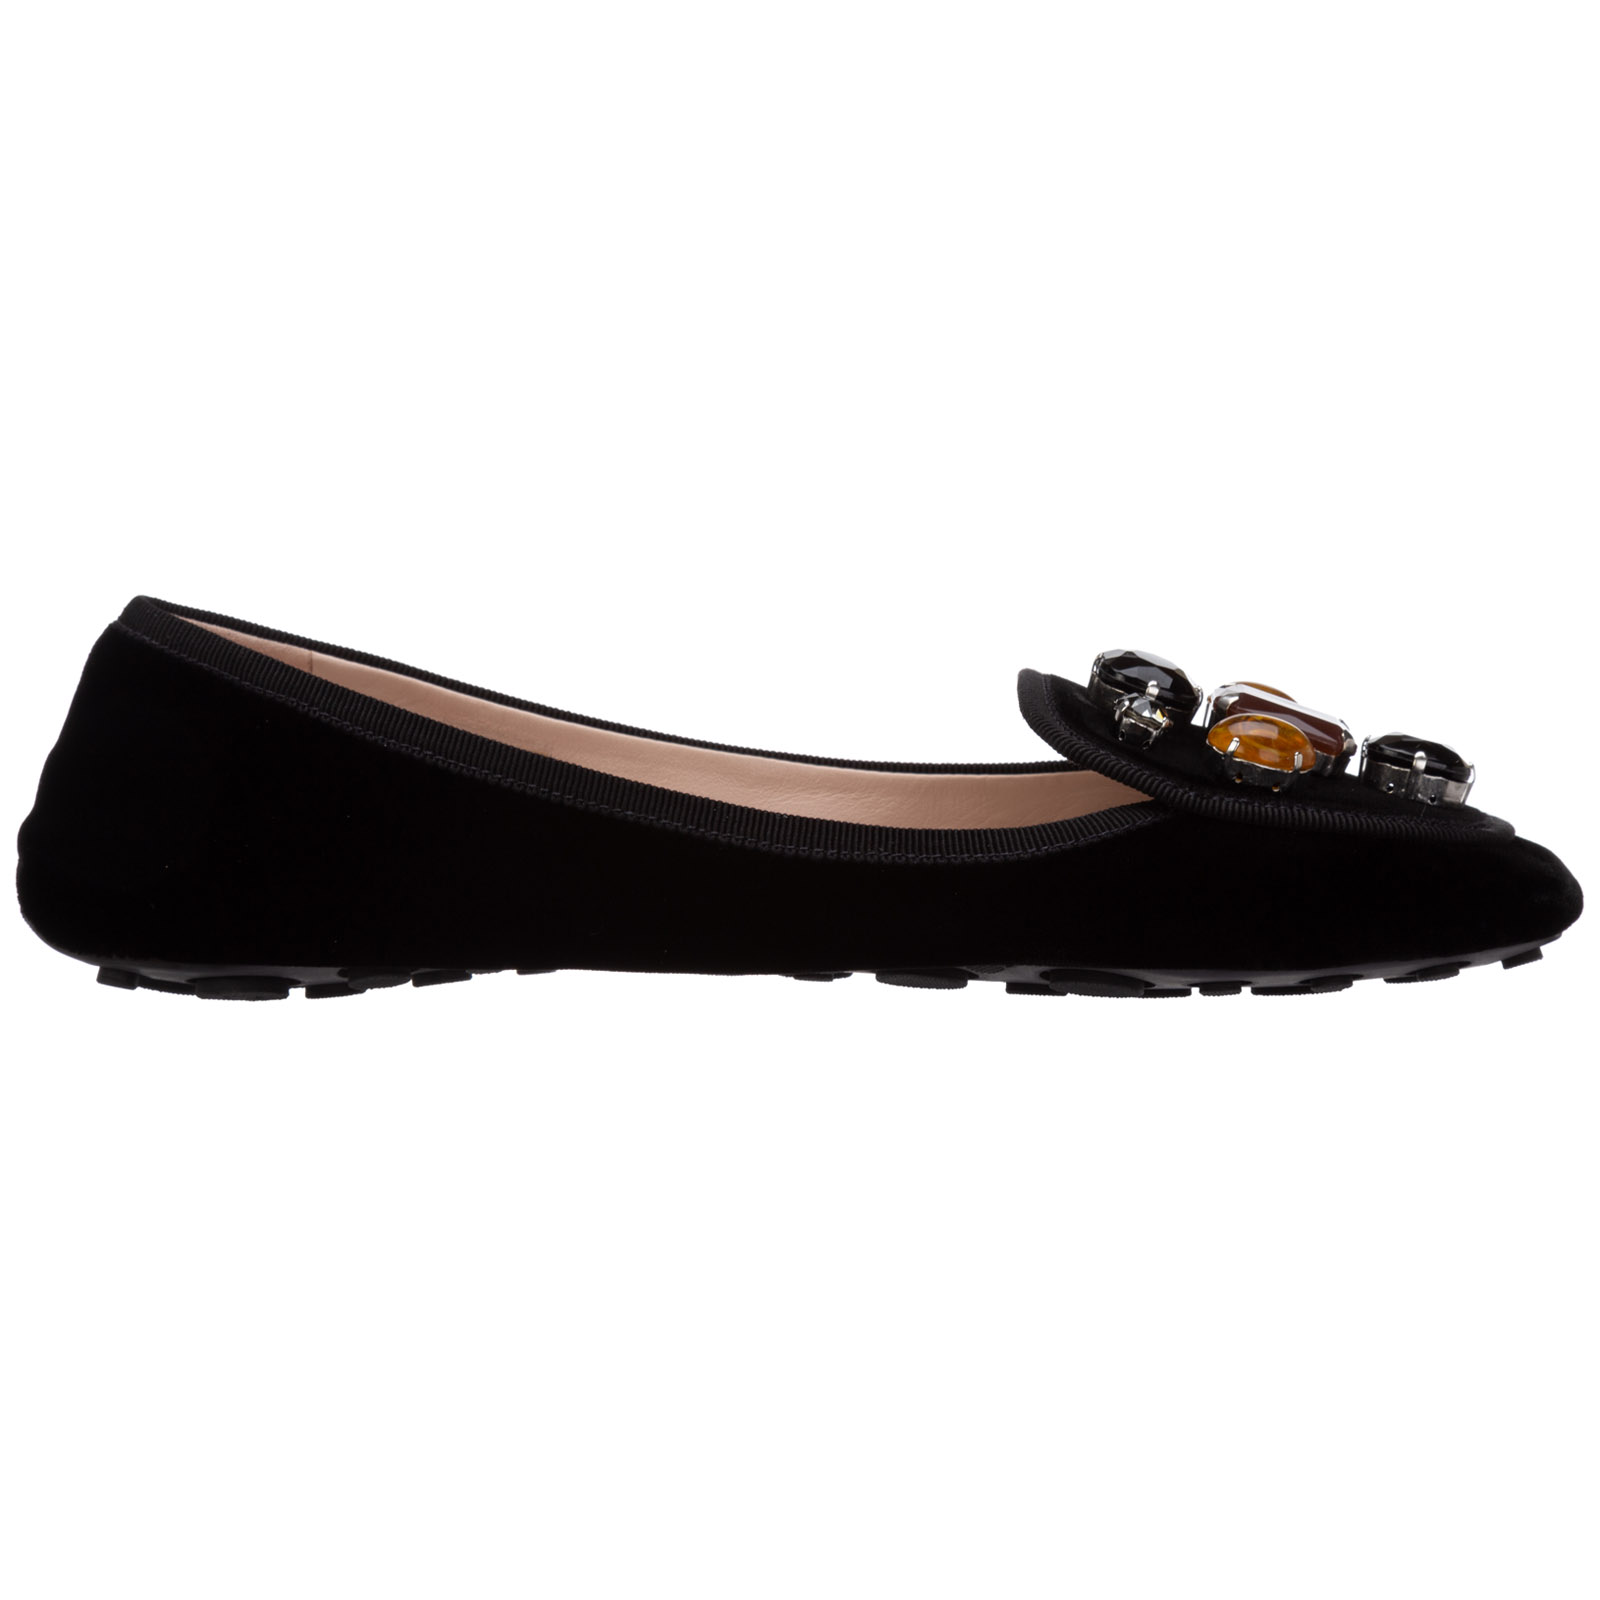 Car Shoe WOMEN'S BALLET FLATS BALLERINAS